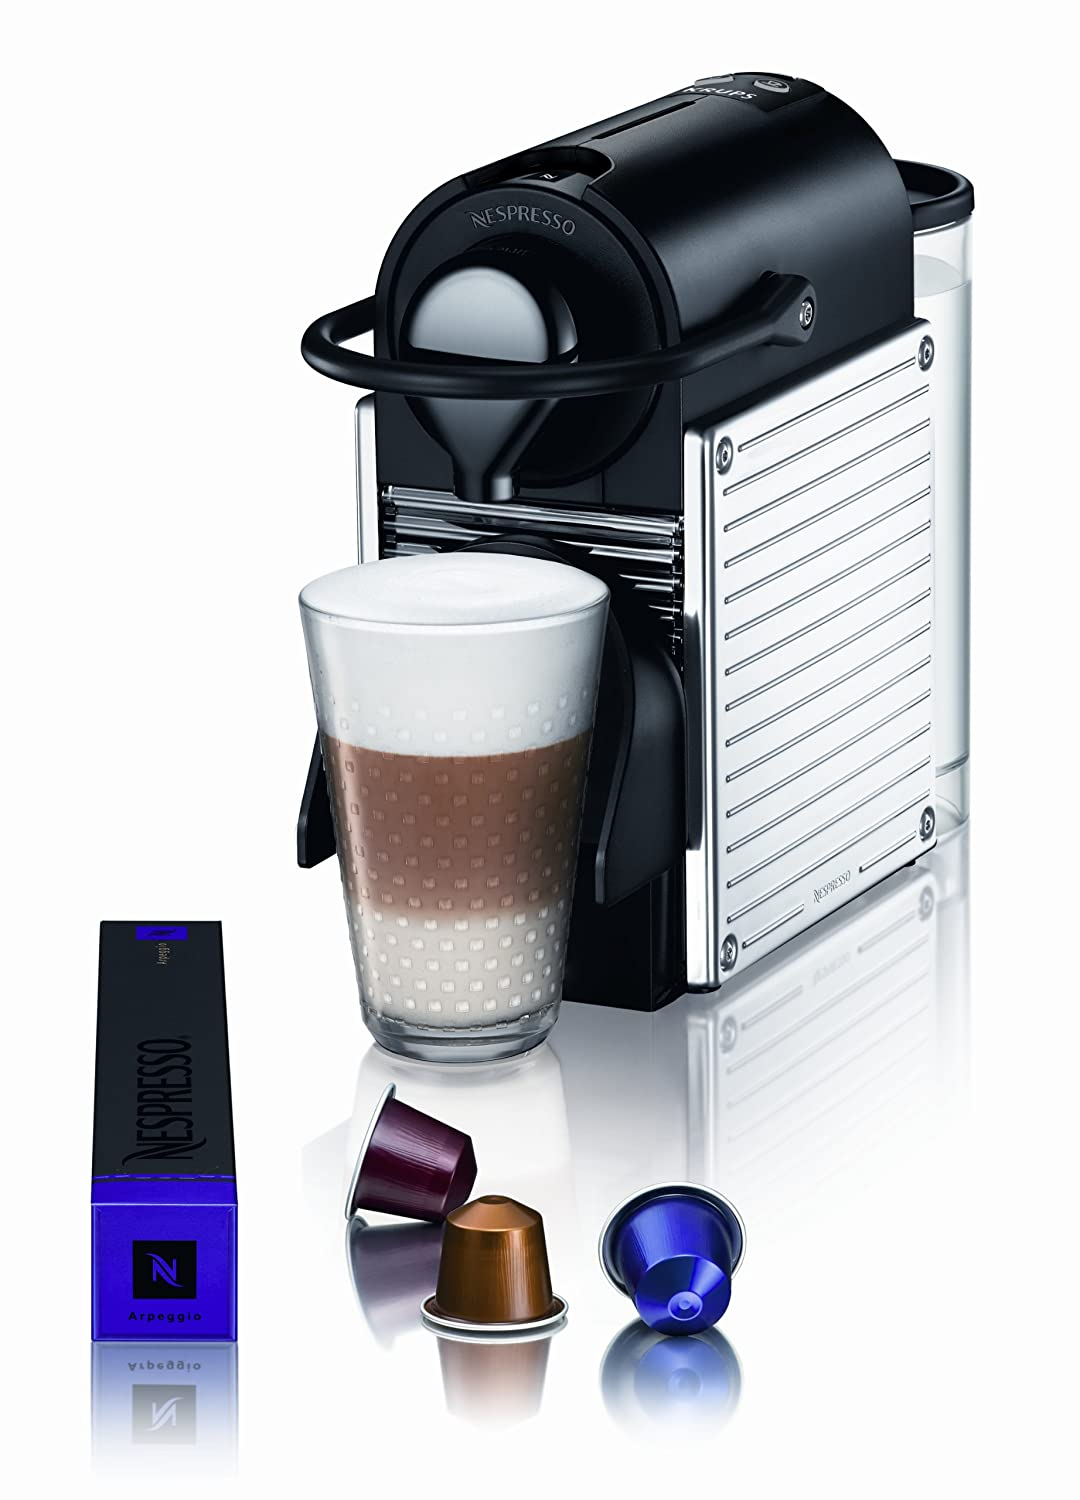 ds1 krups nespresso pixie electric coffee machine aeroccino3 frother silver ebay. Black Bedroom Furniture Sets. Home Design Ideas